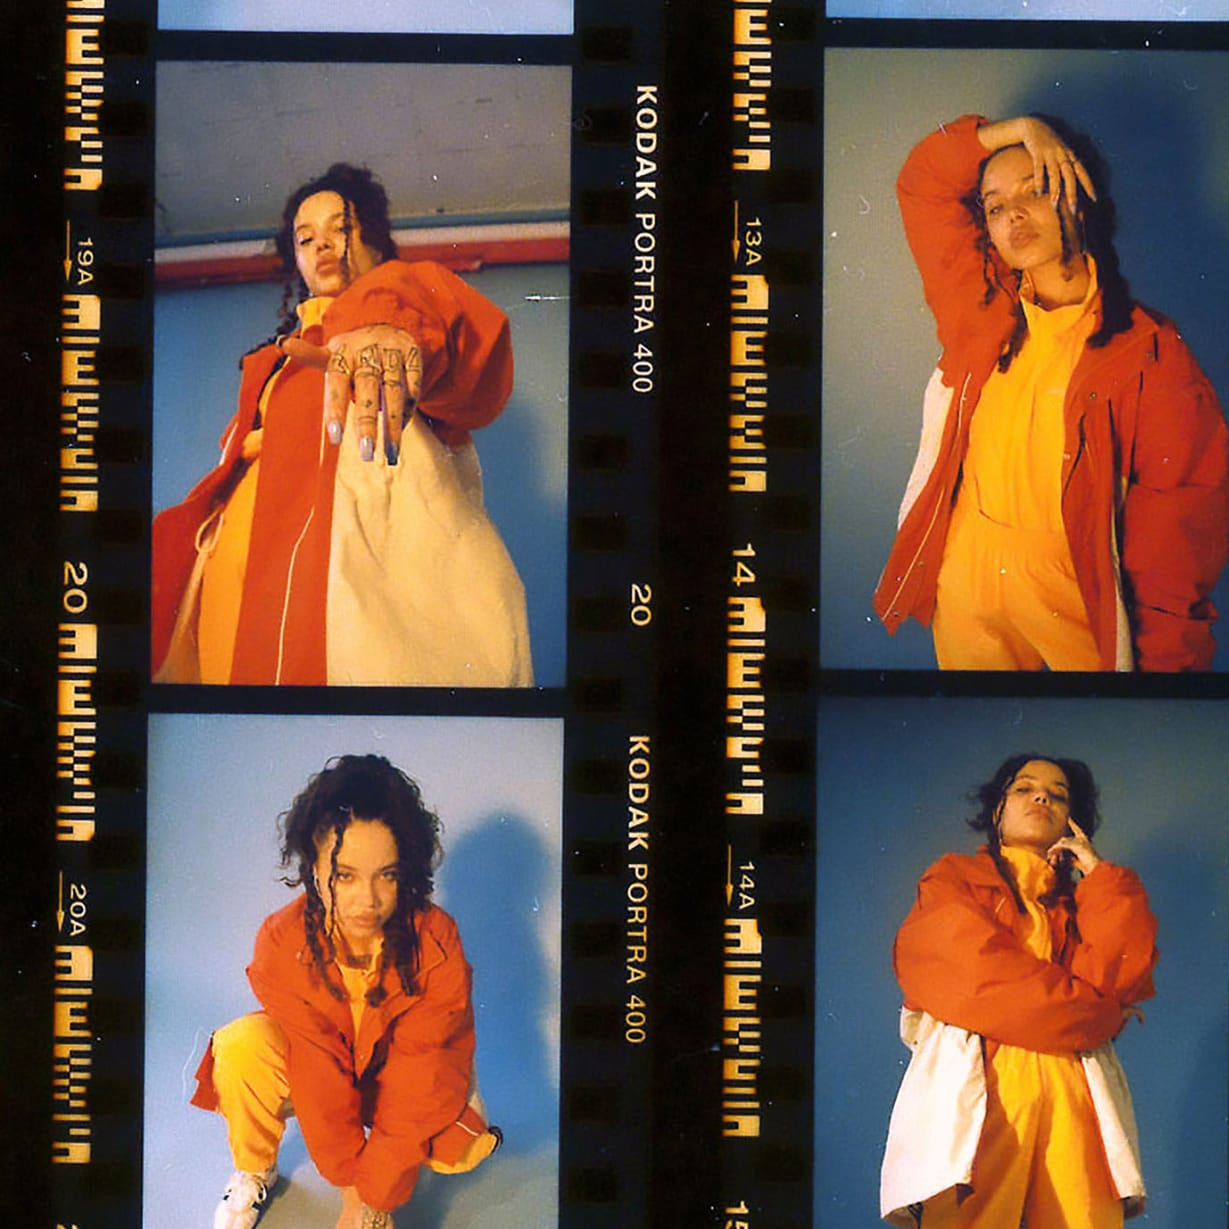 A contact sheet containing various shots of a young female singer.